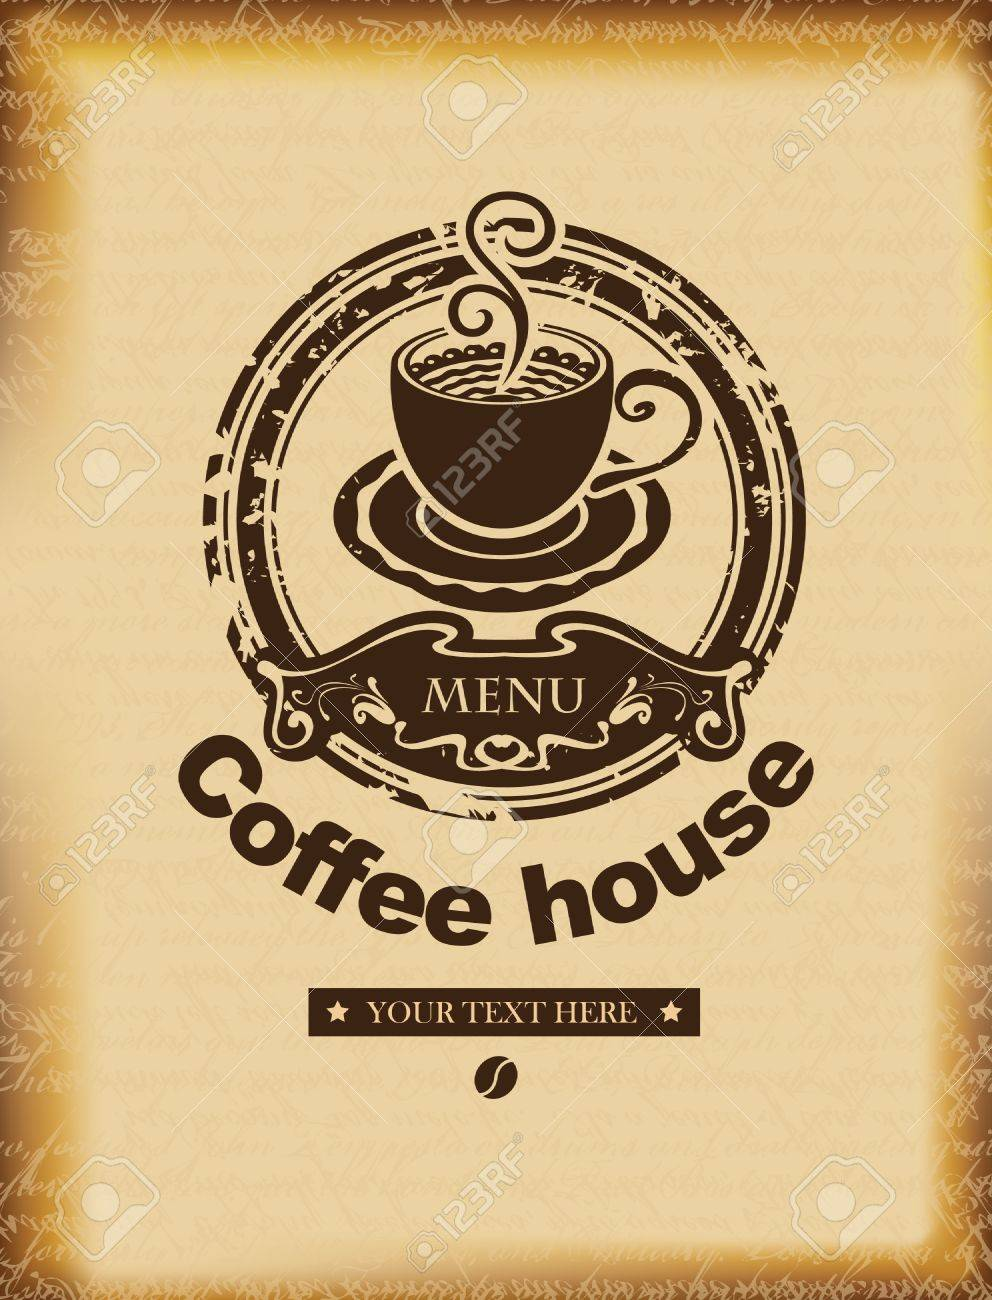 banner for a coffee house on a background of ancient papyrus - 20322876